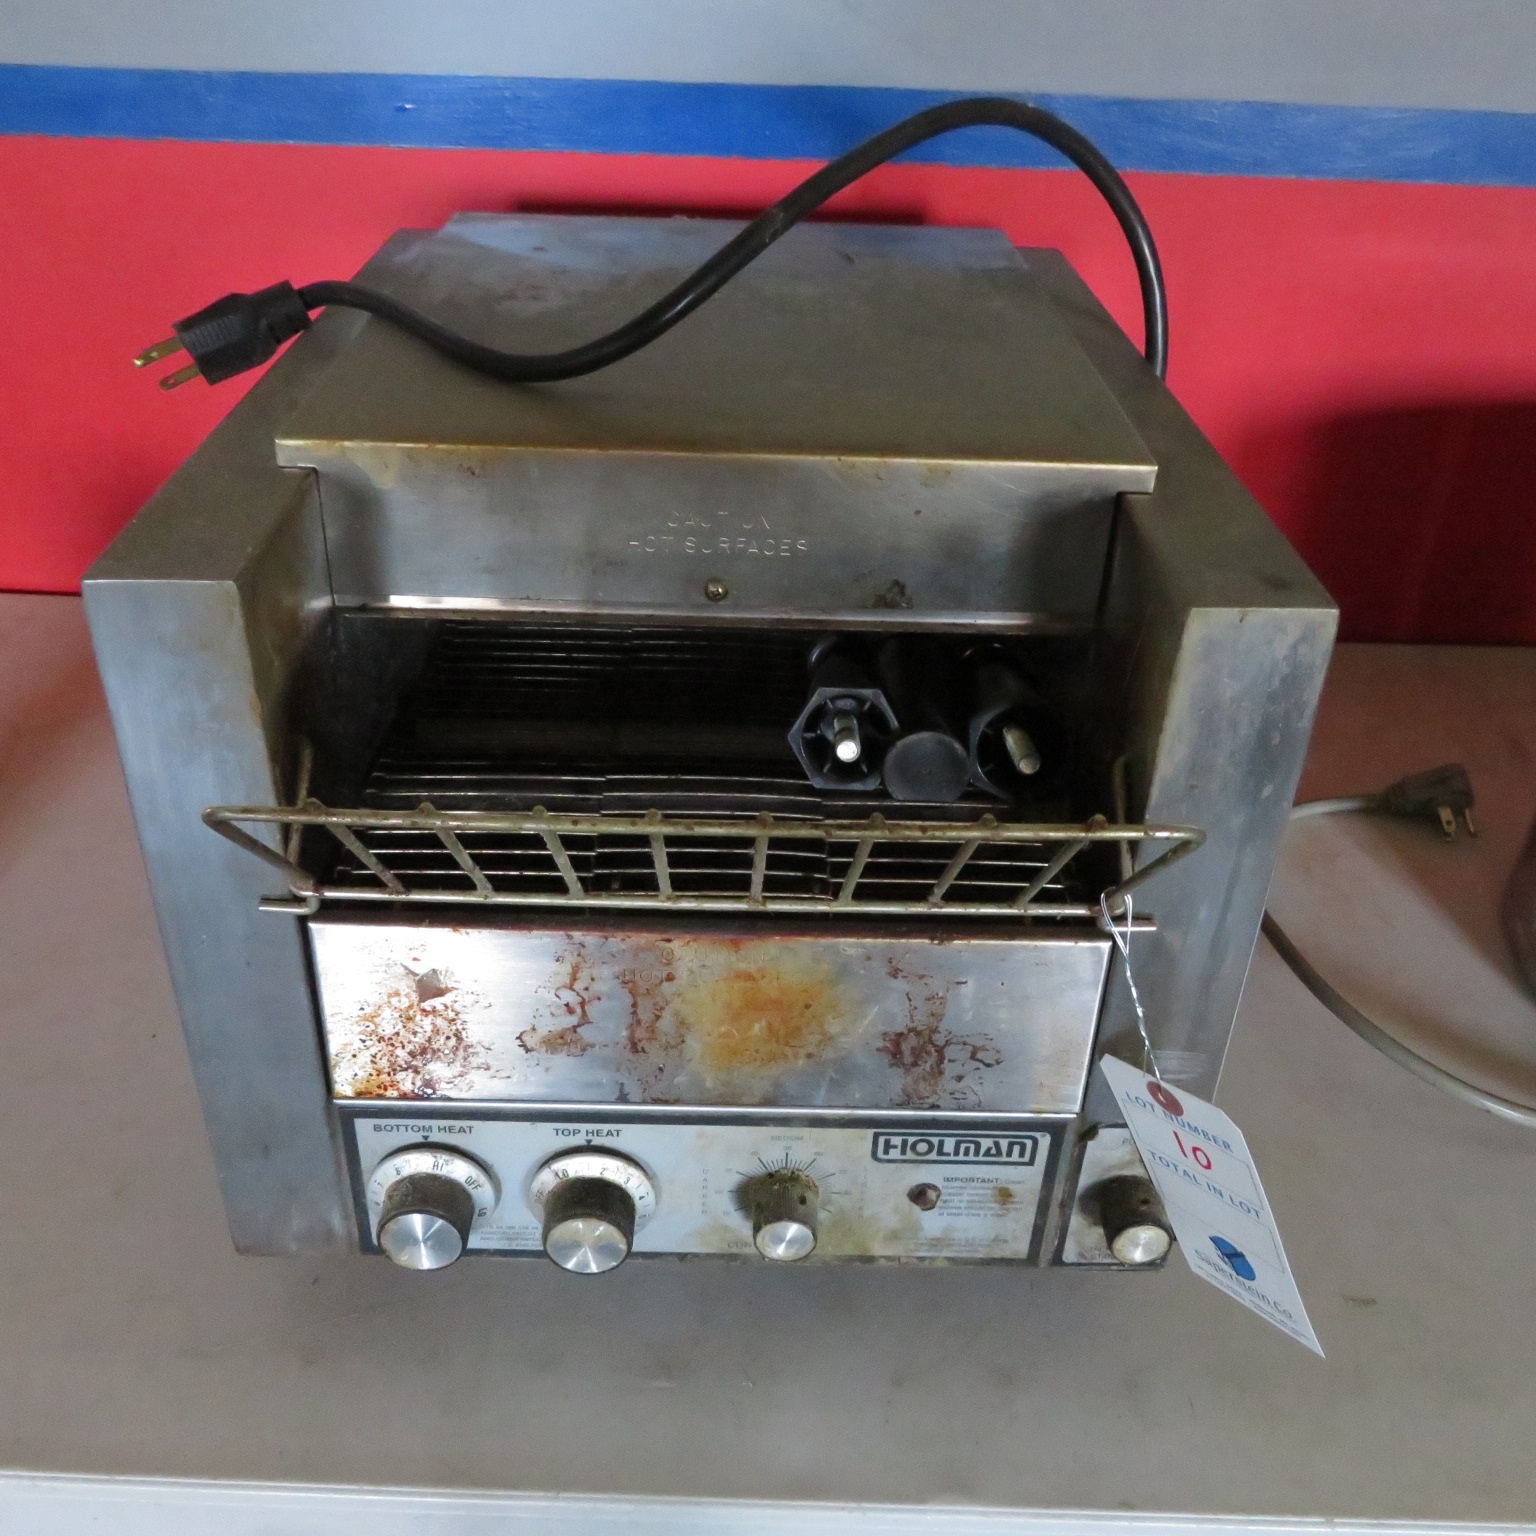 Holman Counter Top rotary Toaster